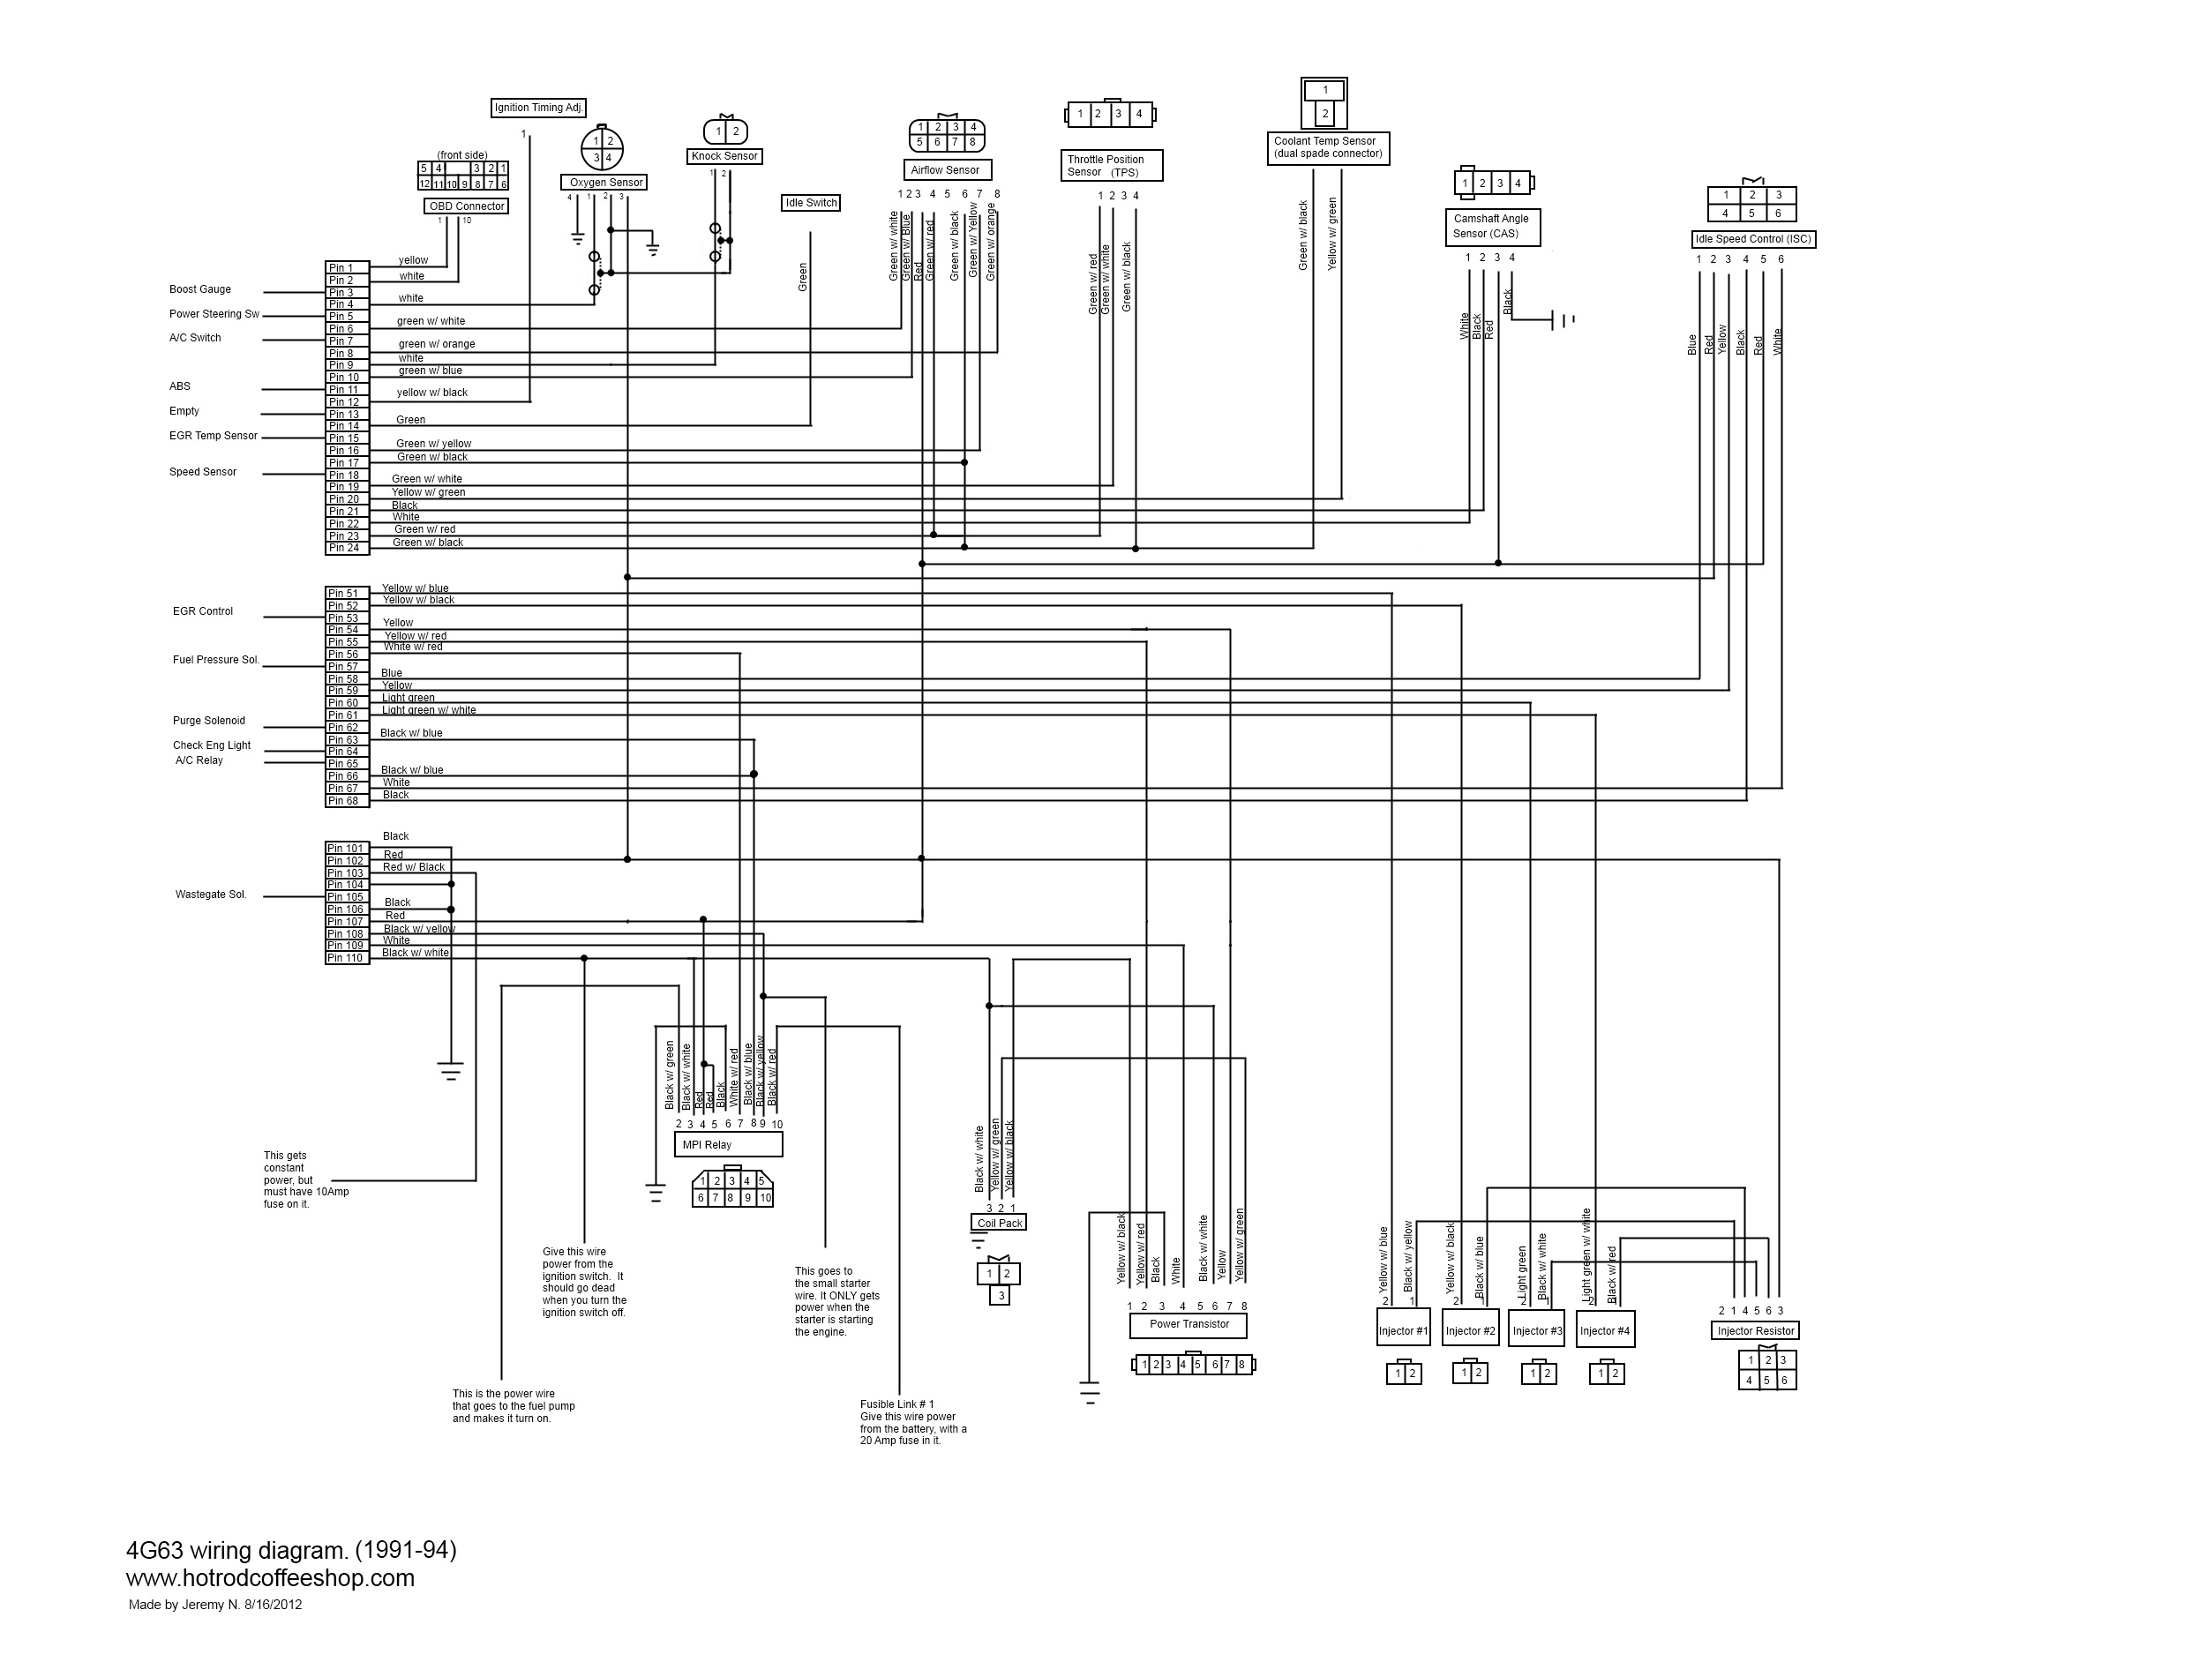 4g63ecudiagram_1 evo 3 wiring diagram led flasher wiring diagram \u2022 wiring diagrams R.C. Pro-Am Wii at reclaimingppi.co